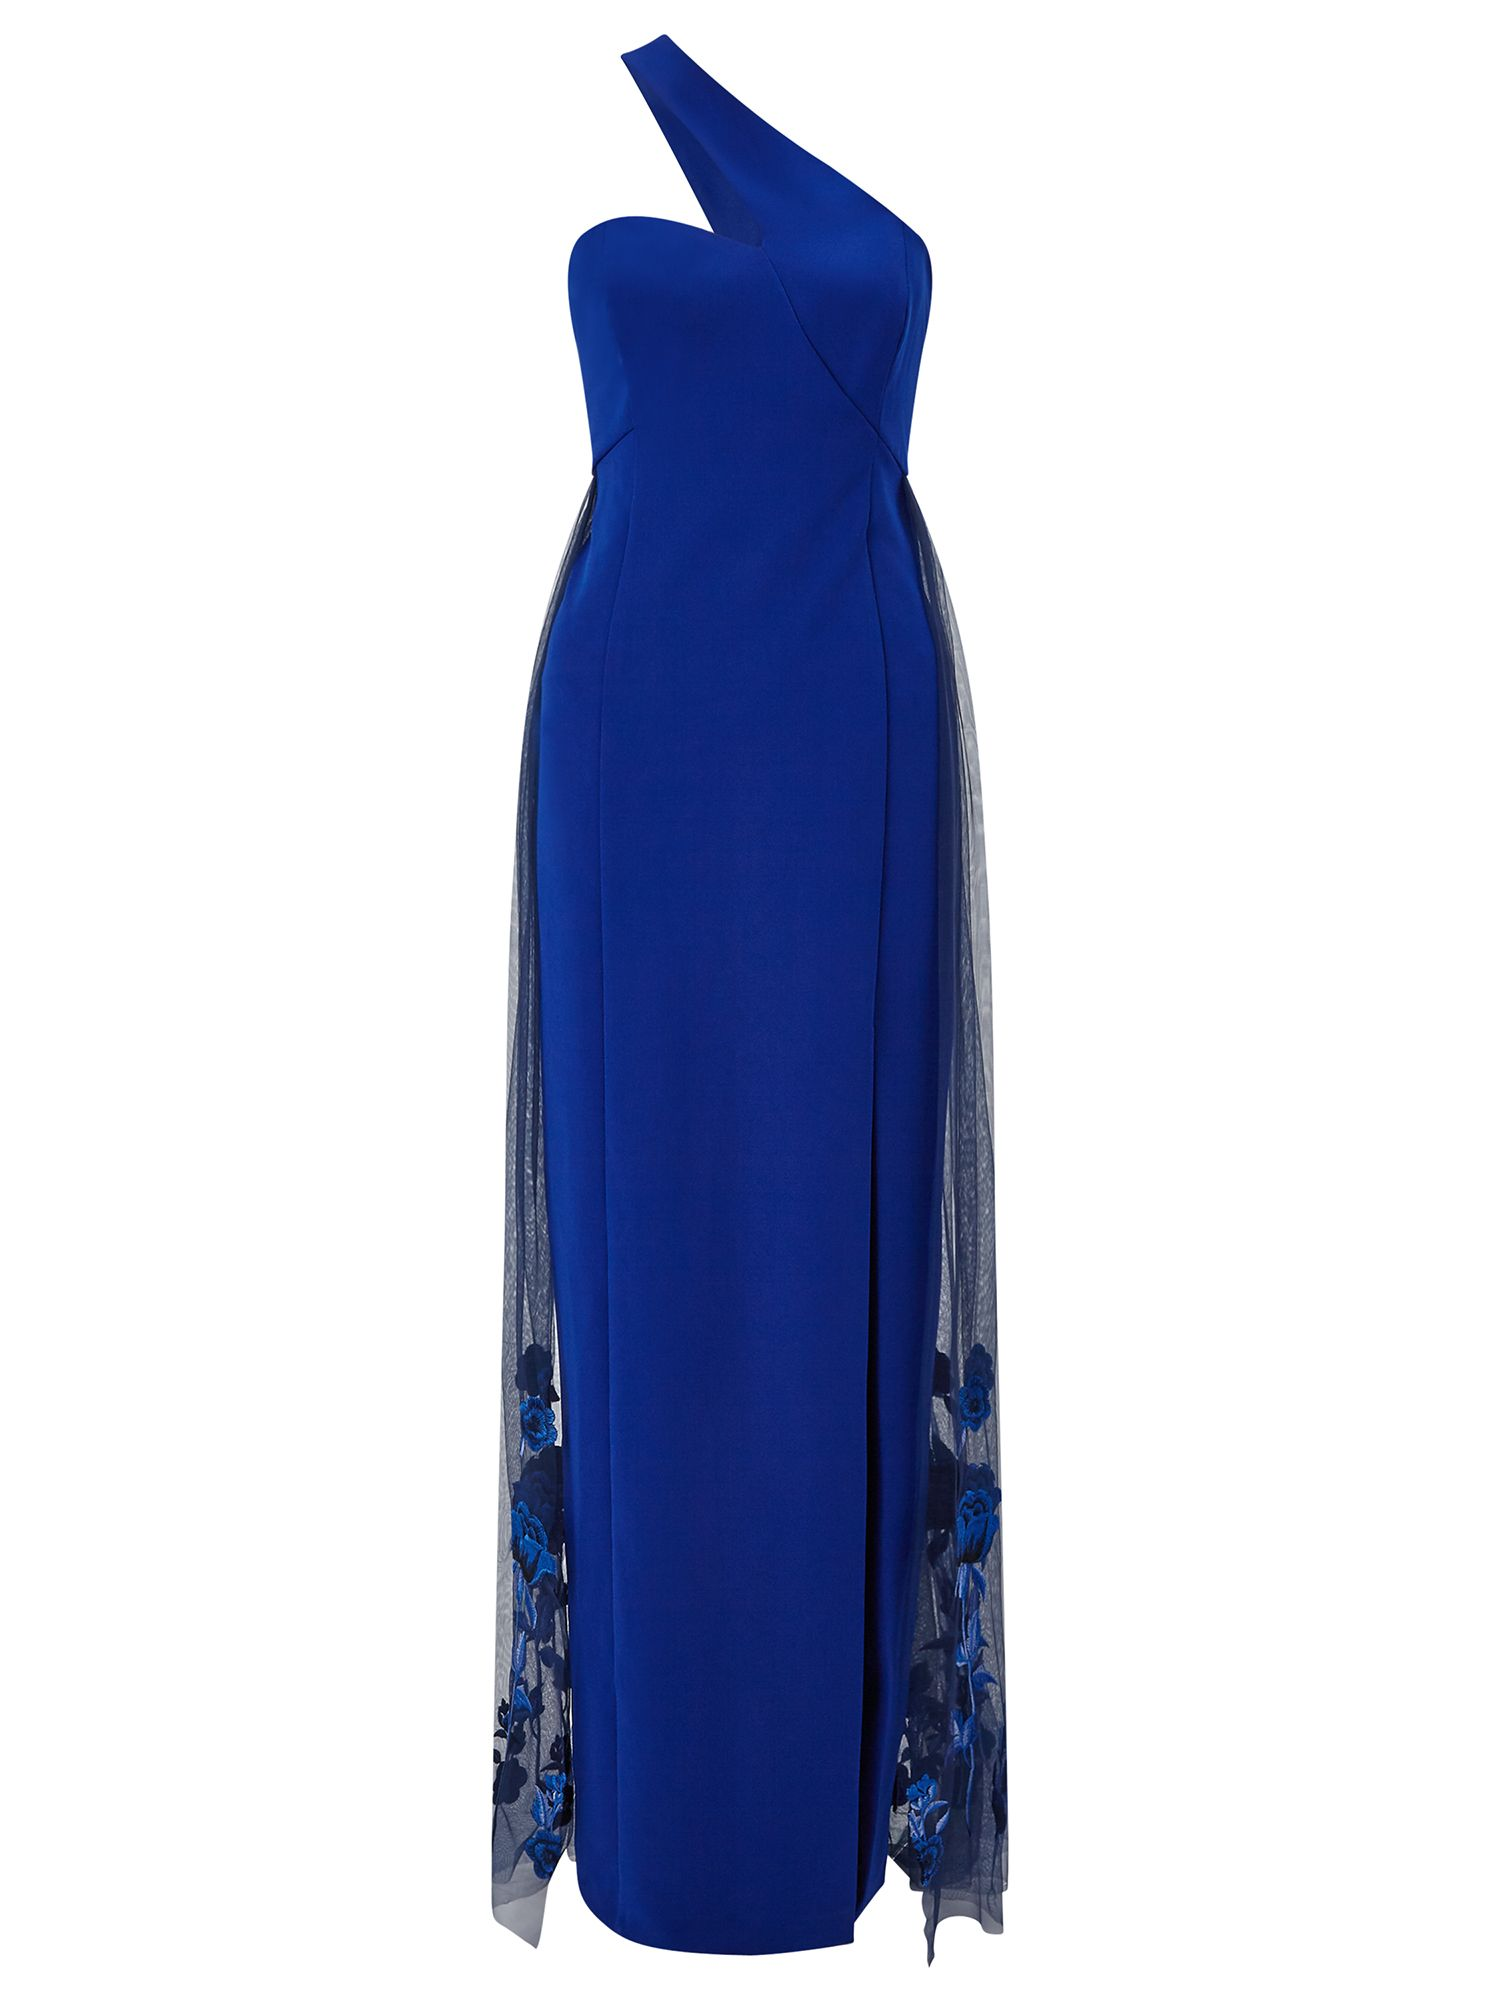 Ariella Couture Lexi One Shoulder Maxi Dress, Blue